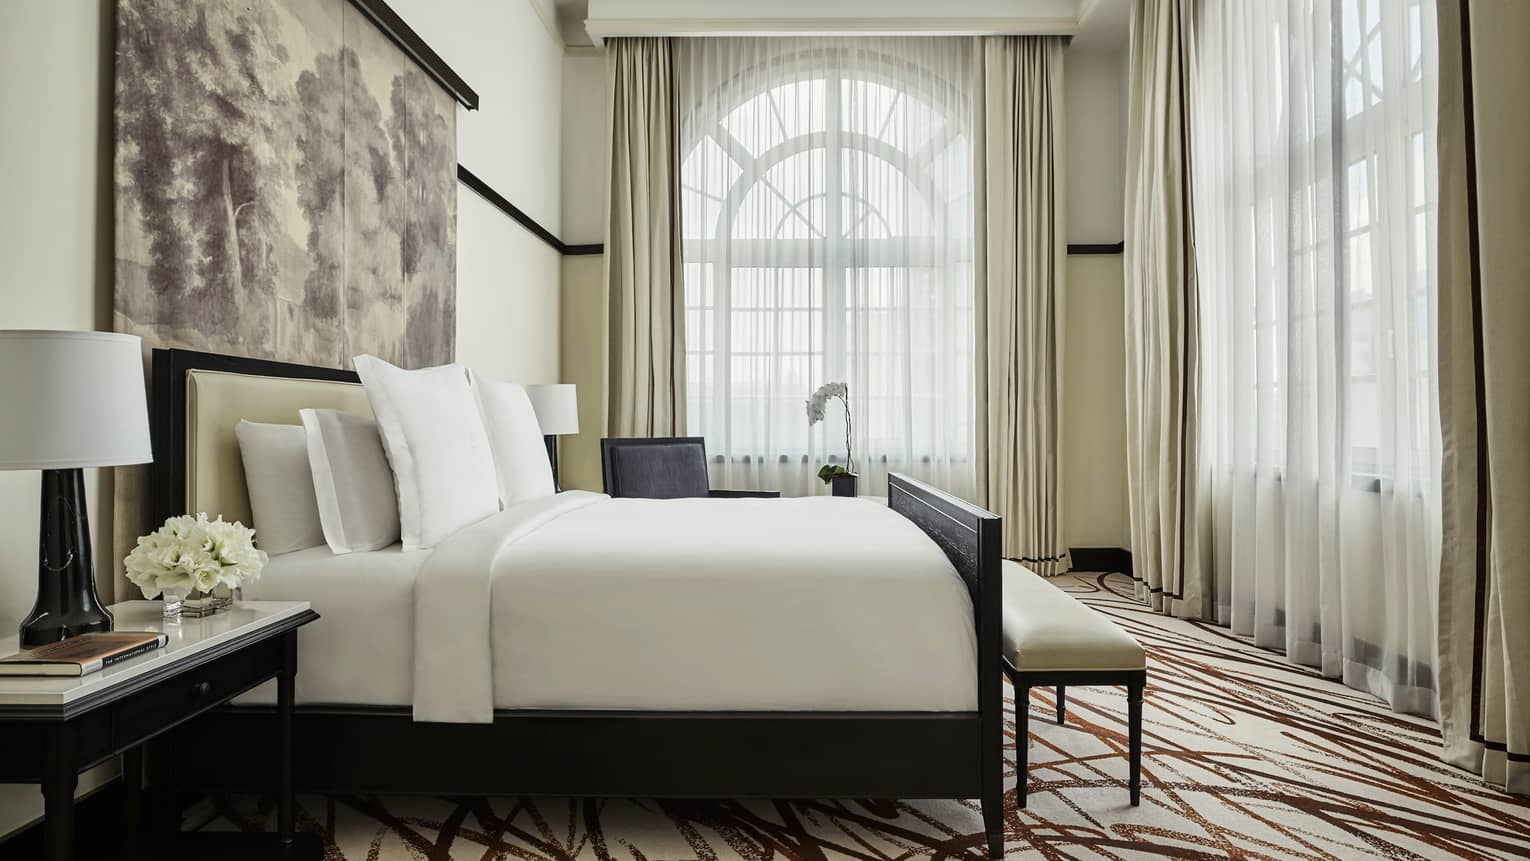 Governor's Suite bedroom, crisp white decor, sunny, arched corner windows with sheer curtains